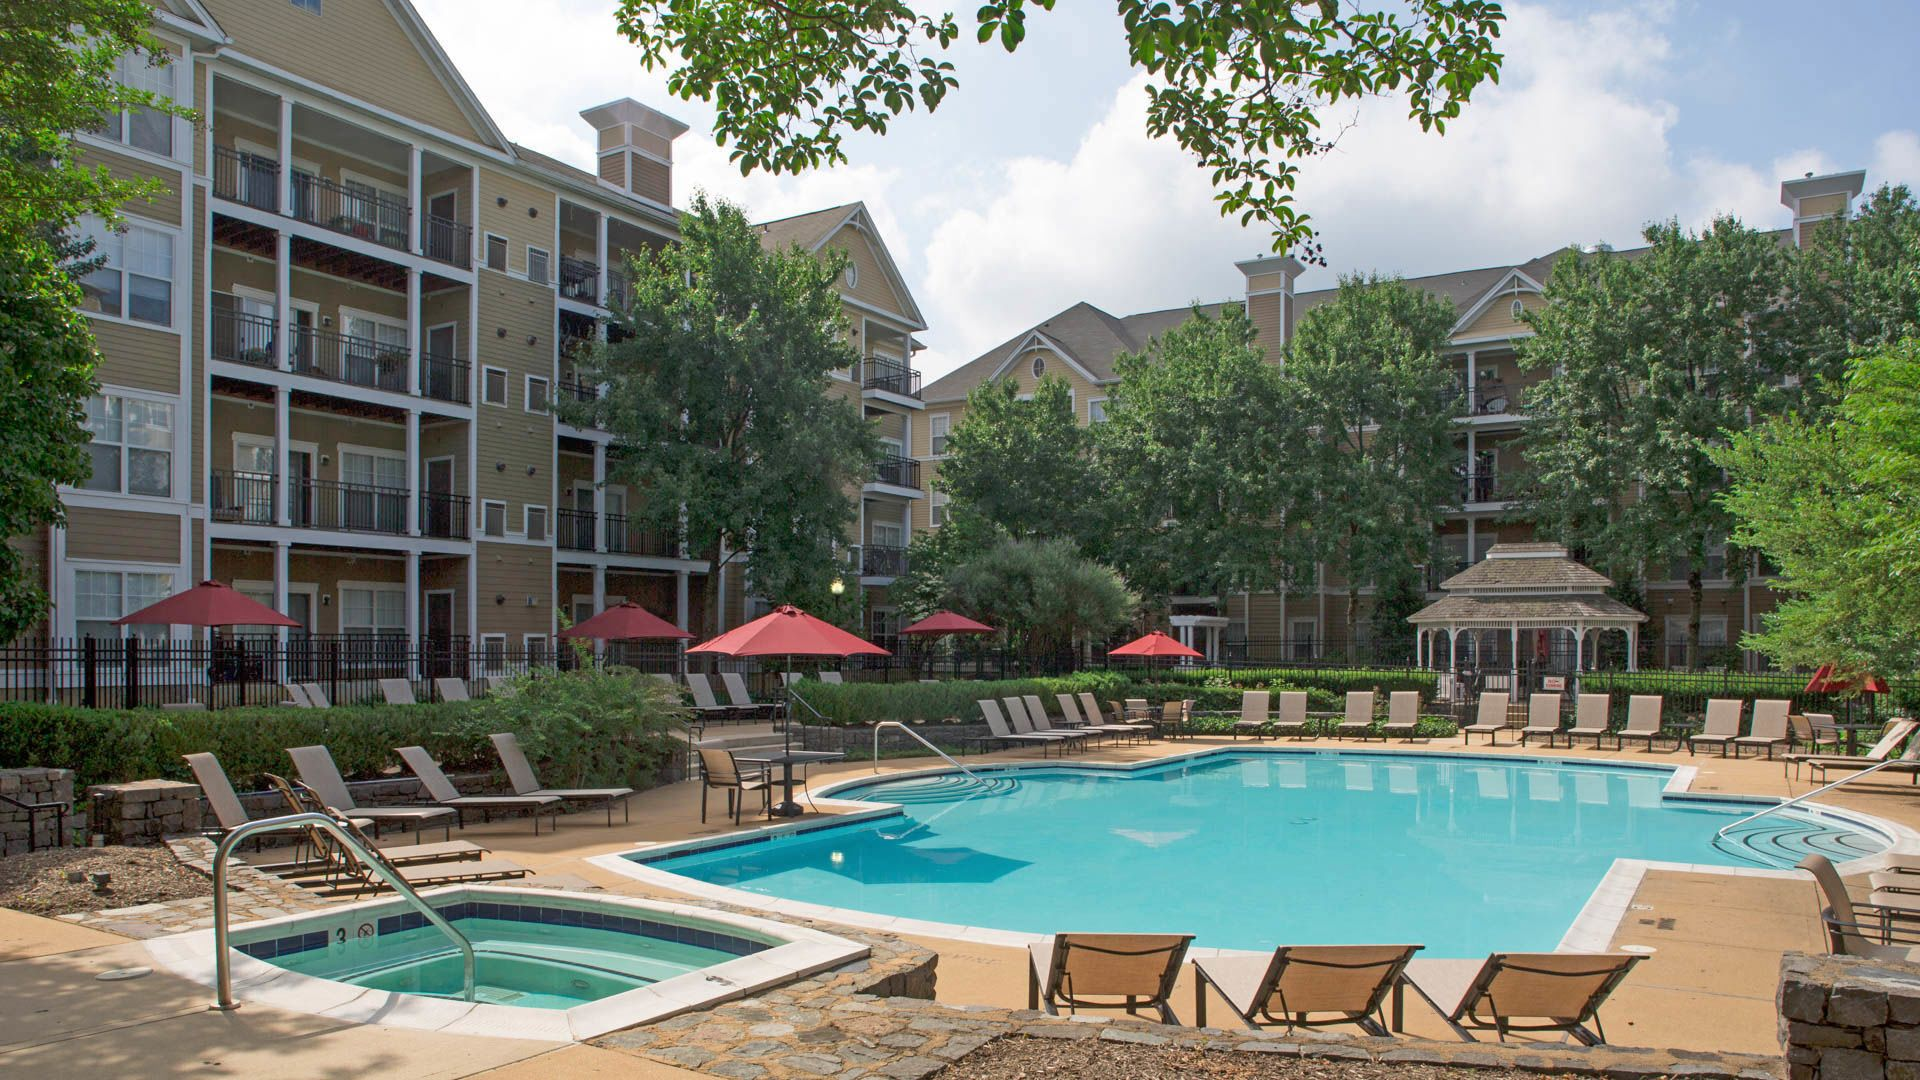 Town Square At Mark Center Apartments In Alexandria 1459 N Beauregard Street Equityapartments